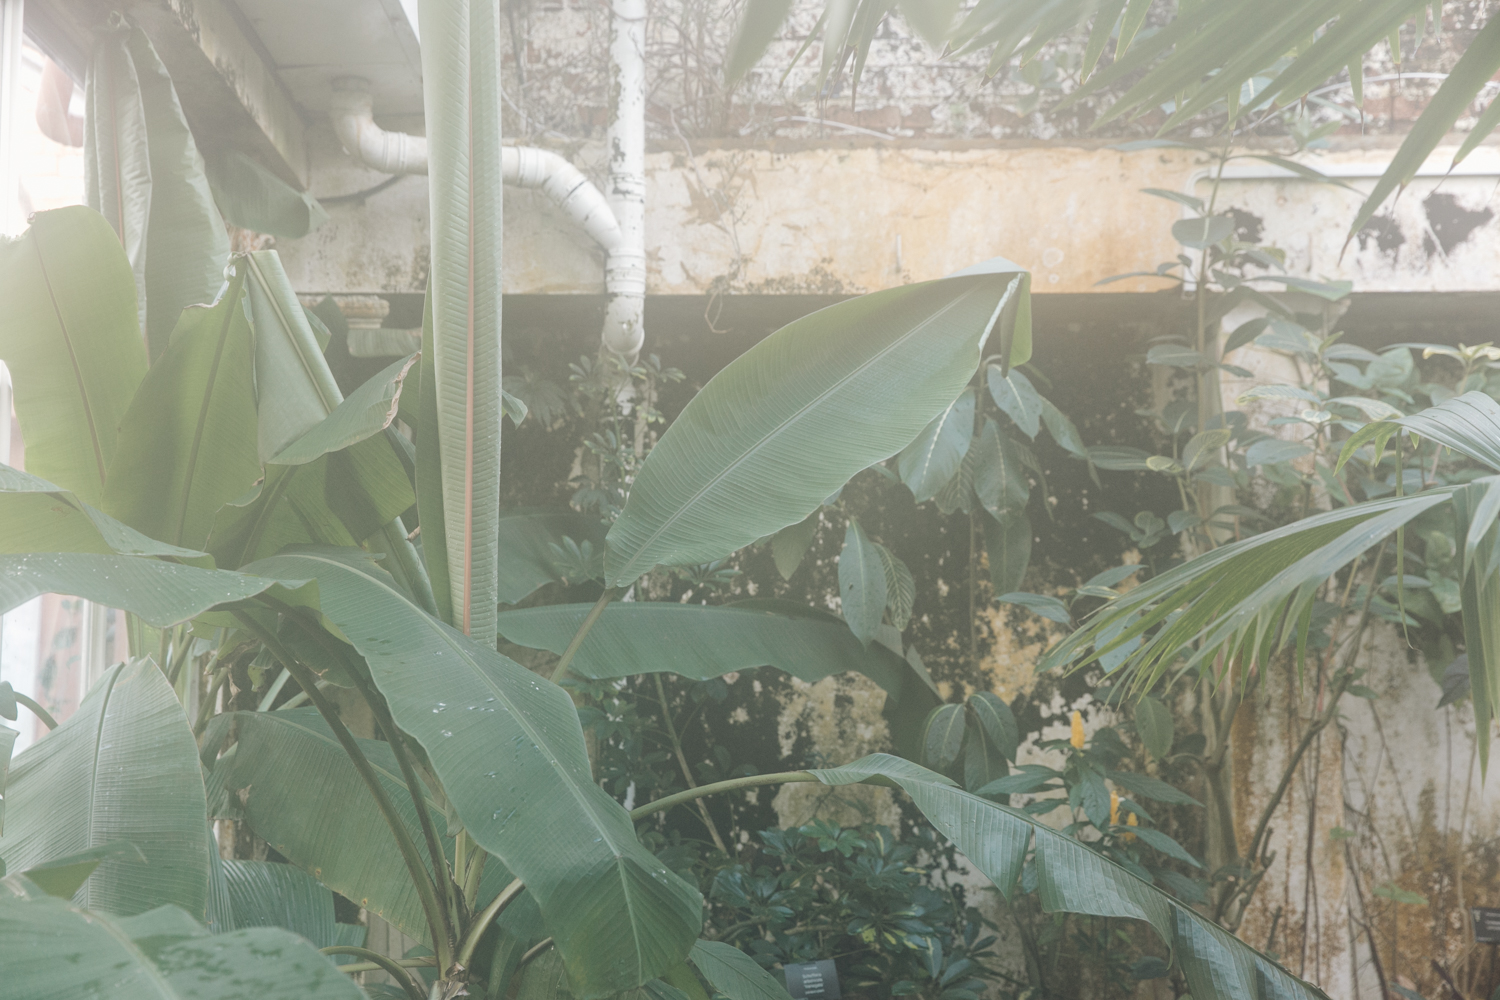 A steamy glasshouse full of plants.